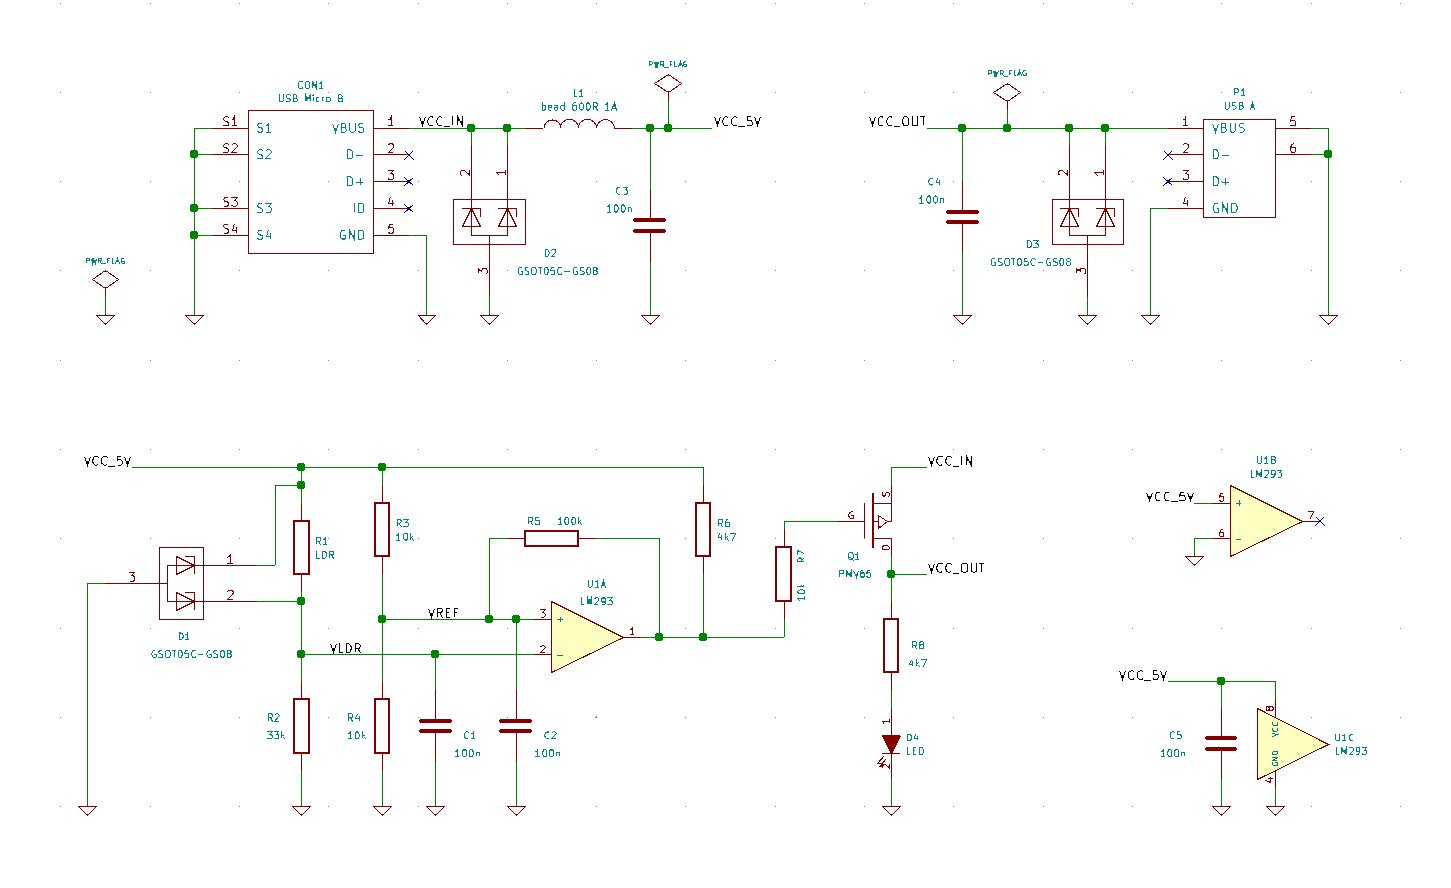 ...and schematic.